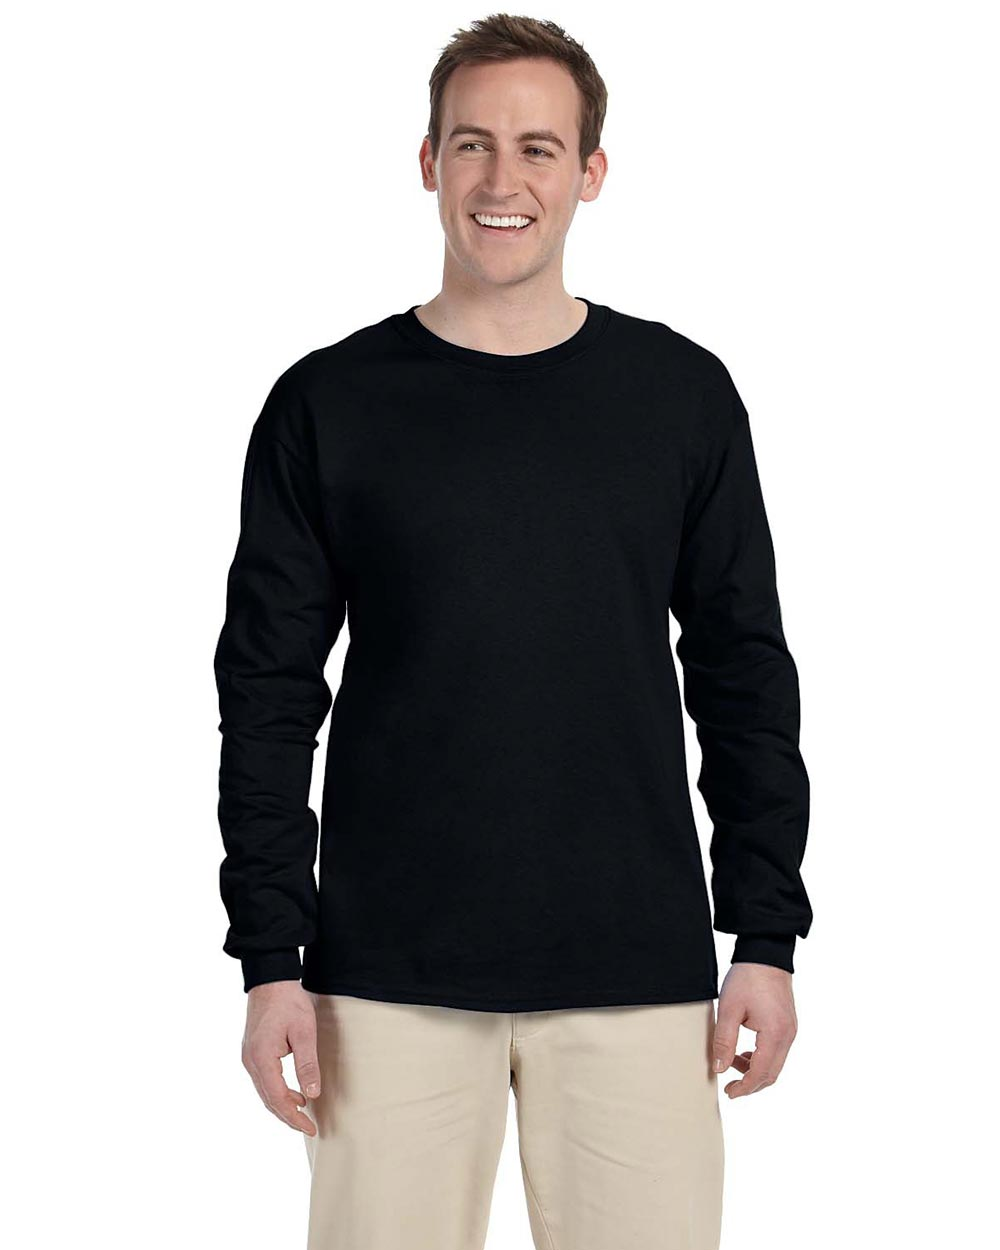 Fruit Of The Loom 4930 - Adult 8.3 oz HD Cotton Long-Sleeve T-Shirt